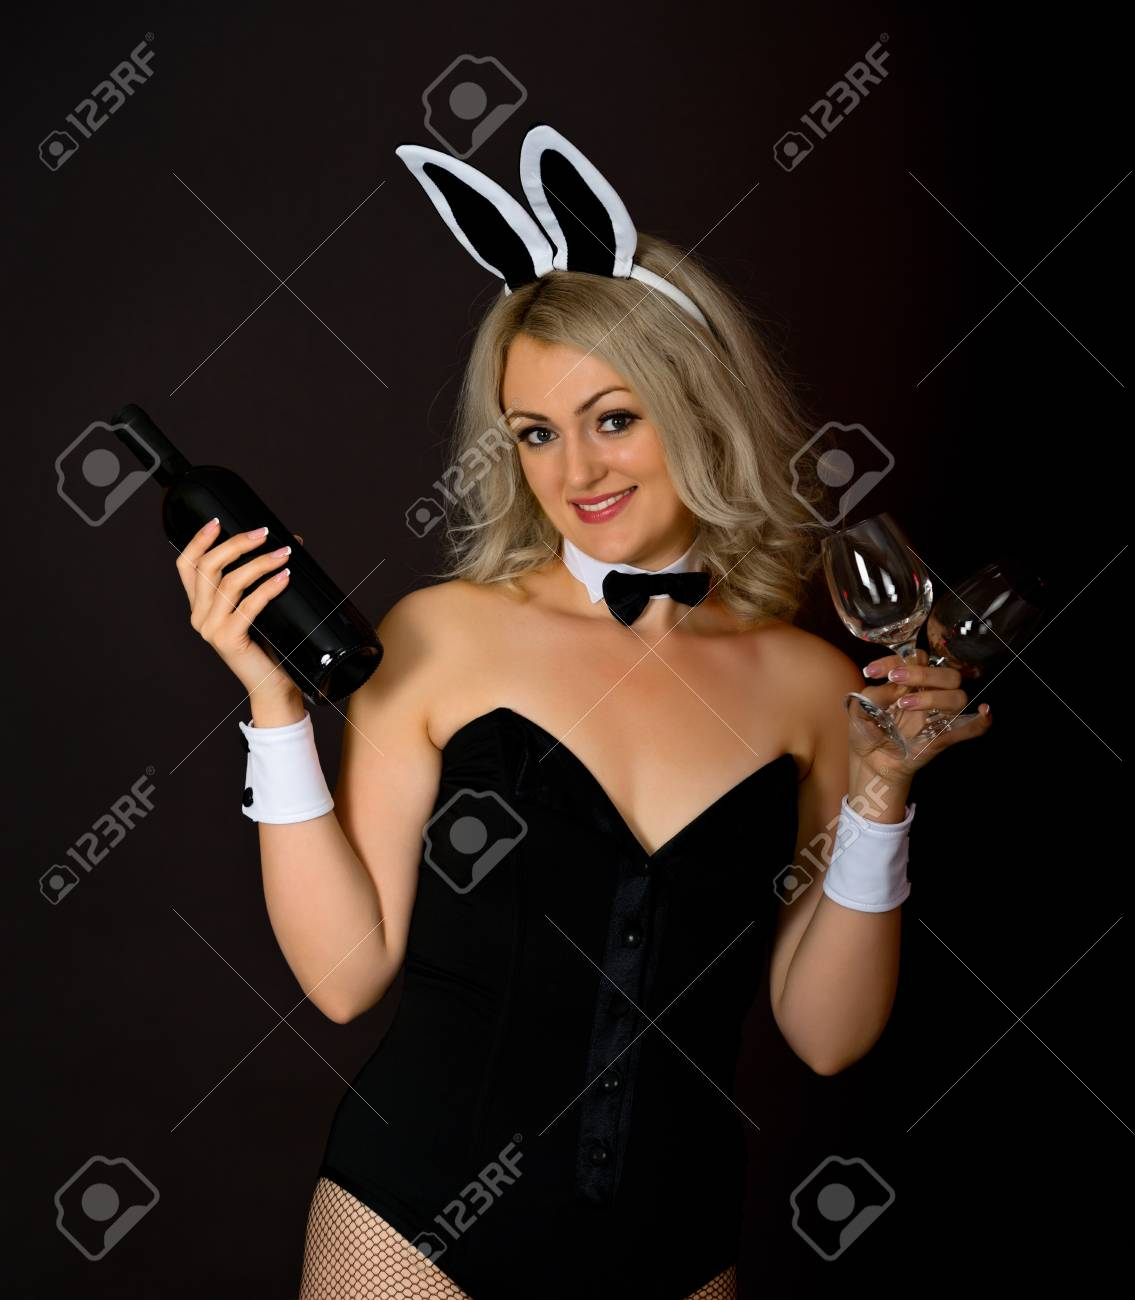 Young blonde with a bottle of wine and glasses on a dark background Stock Photo - 13977109